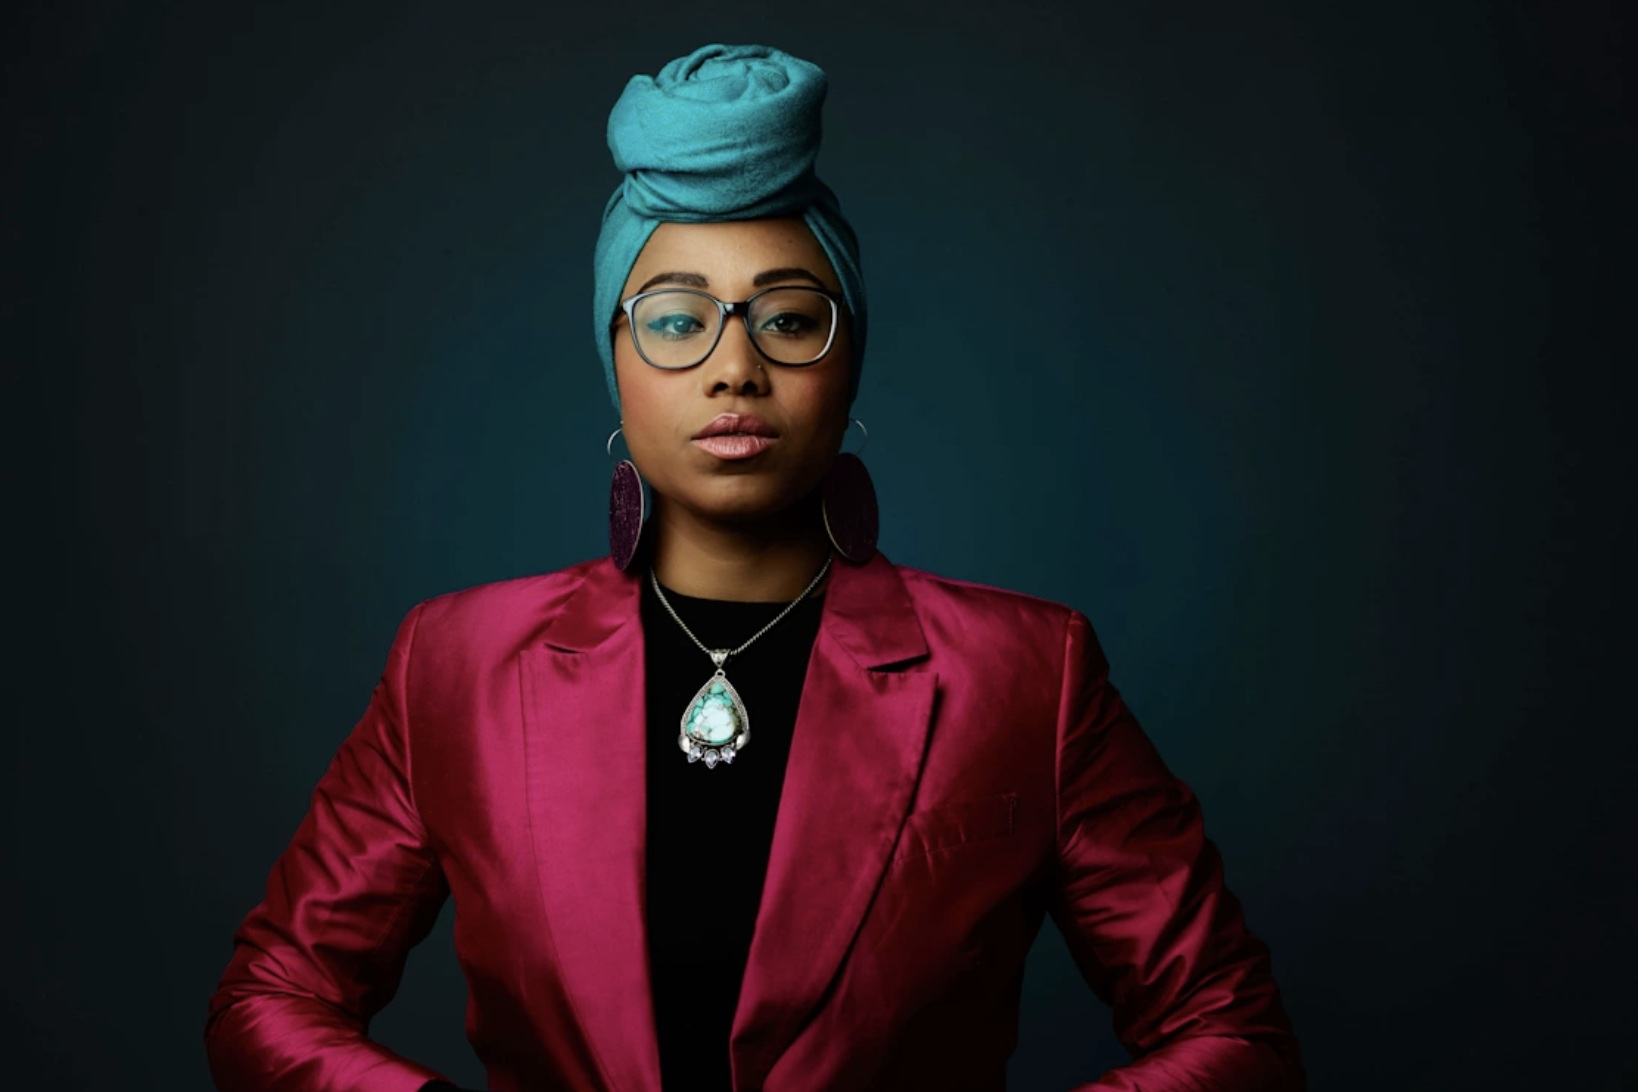 Yassmin Abdel-Magied - Meet Yassmin Abdel-Magied! She is an engineer, best selling author and a speaker. Yassmin is dedicated to promote empathy and empowerment in the world with her insightful TED talks that currently has over 1.8 million views. To learn more about Yassmin Abdel-Magied and her dedication to promote diversity in the world, visit the link below!